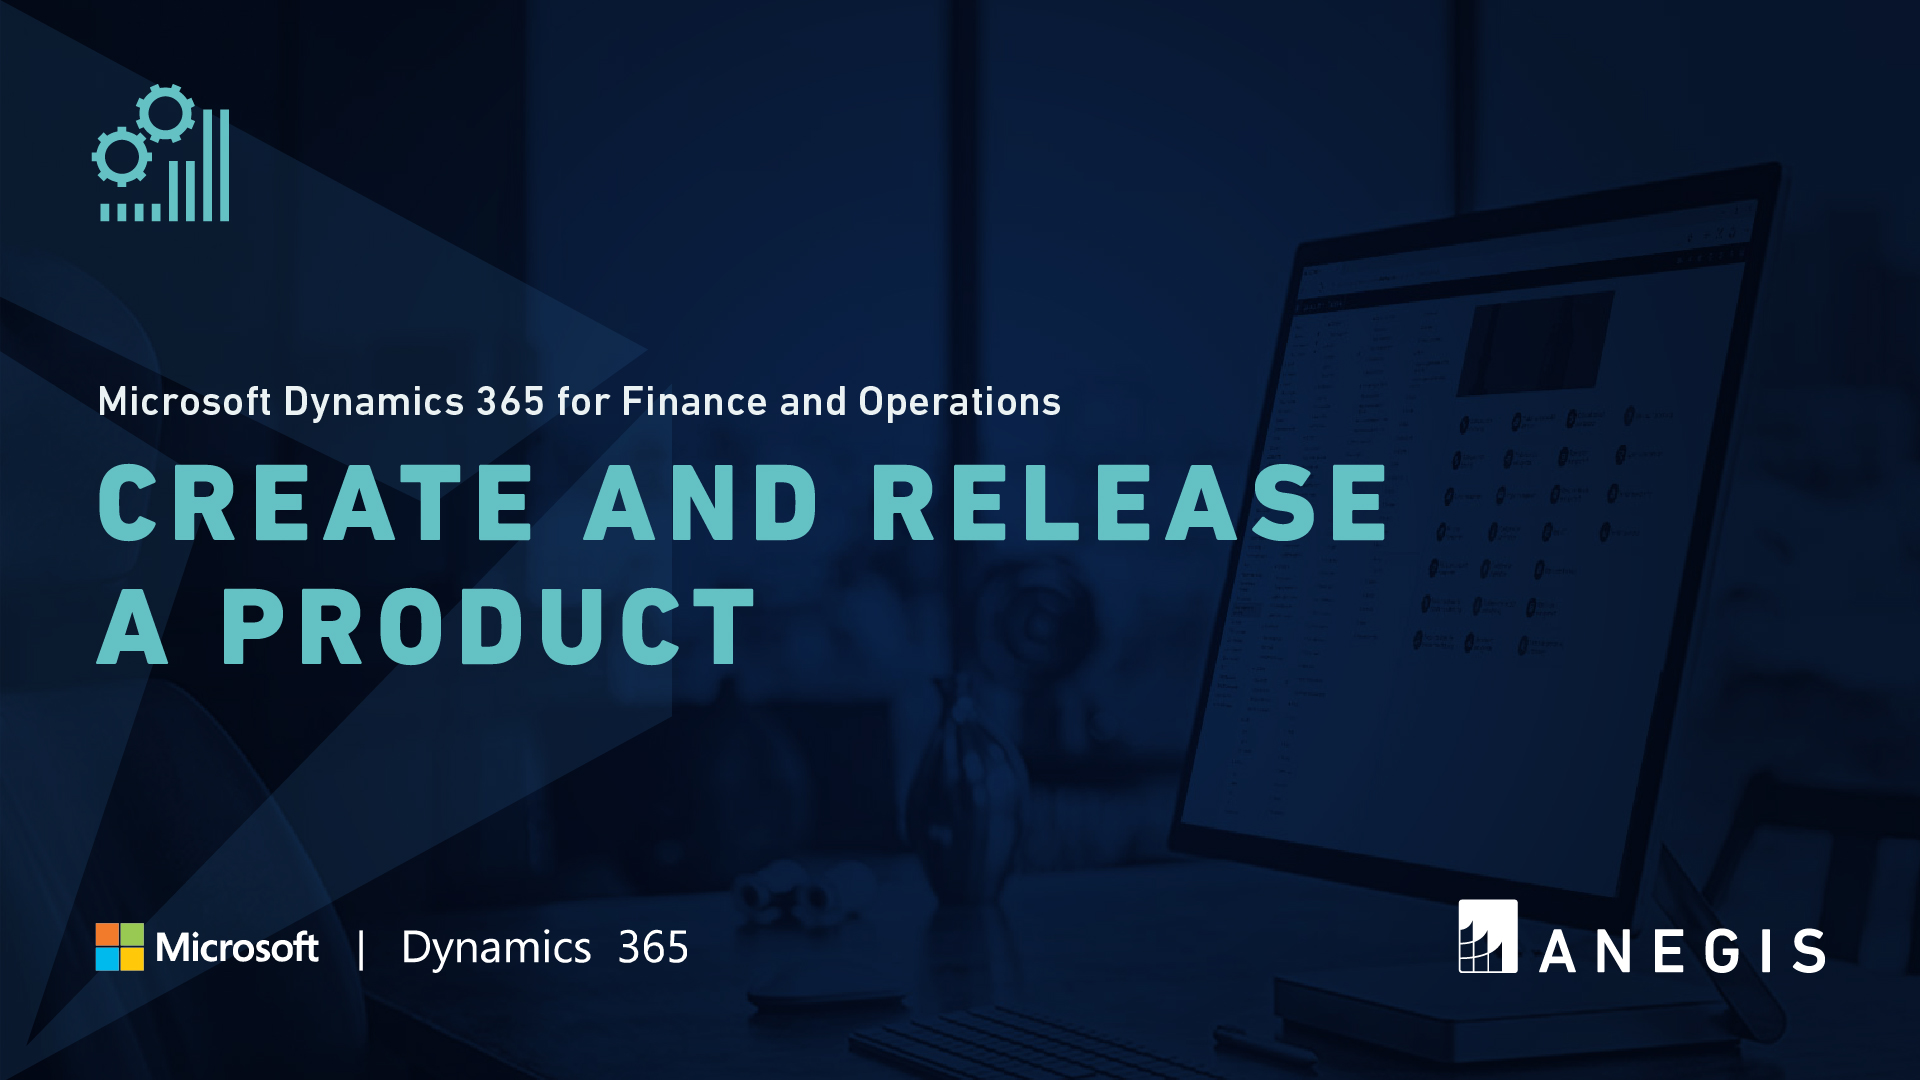 D365 F&O: Create and Release a Product